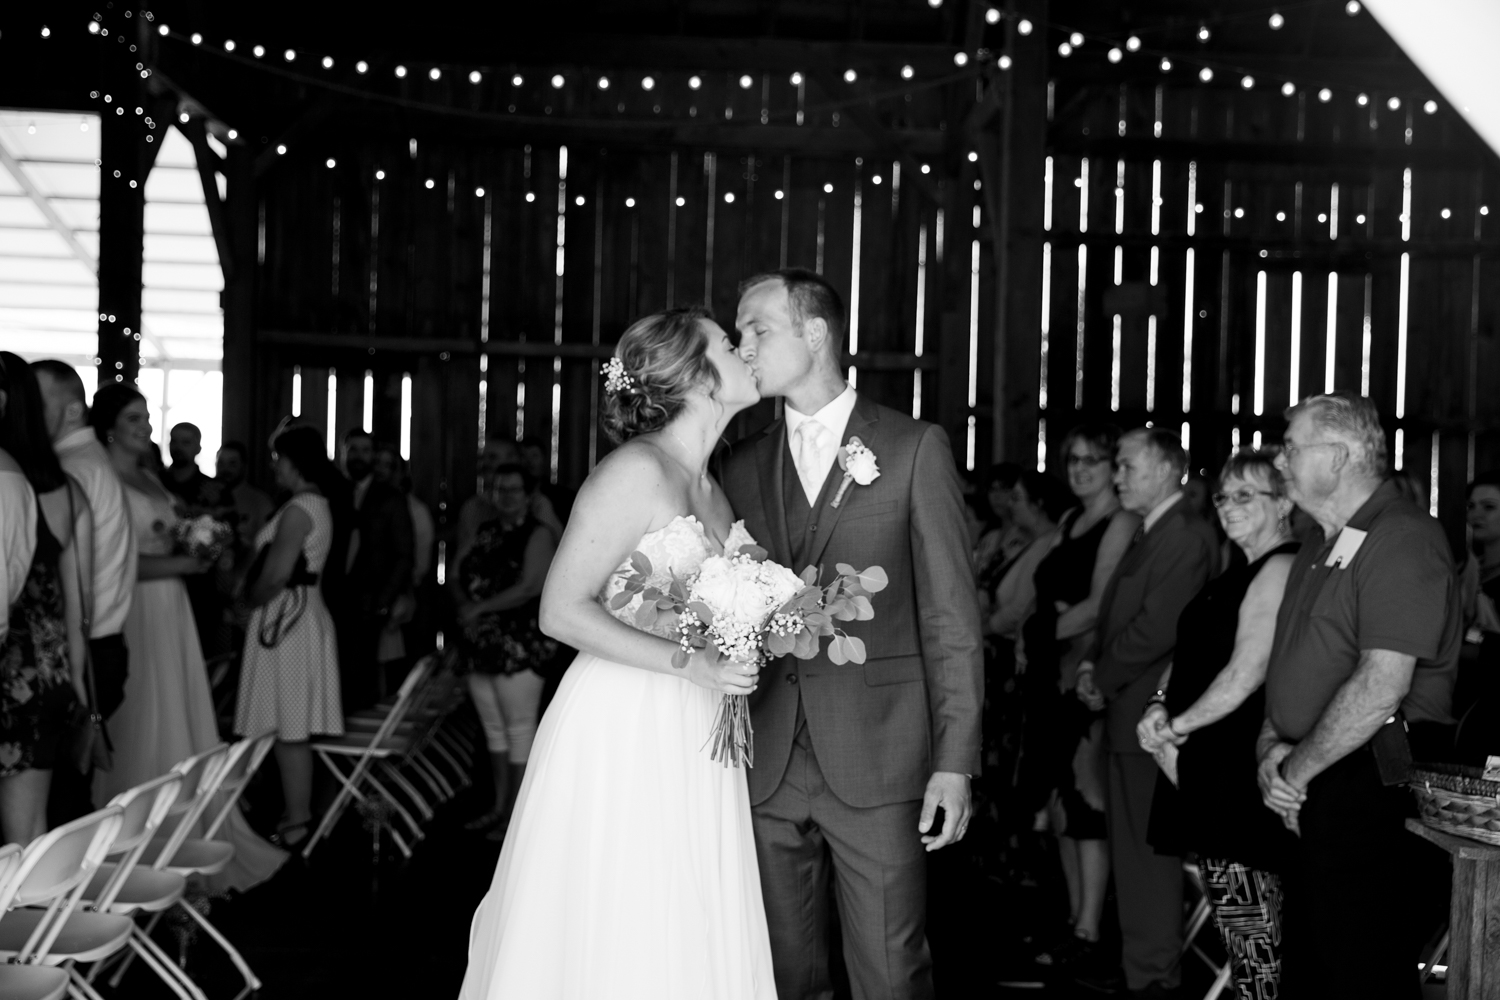 Simple Rustic Barn Wedding at Brighton Acres in Oshkosh, Wisconsin - Whit Meza Photography